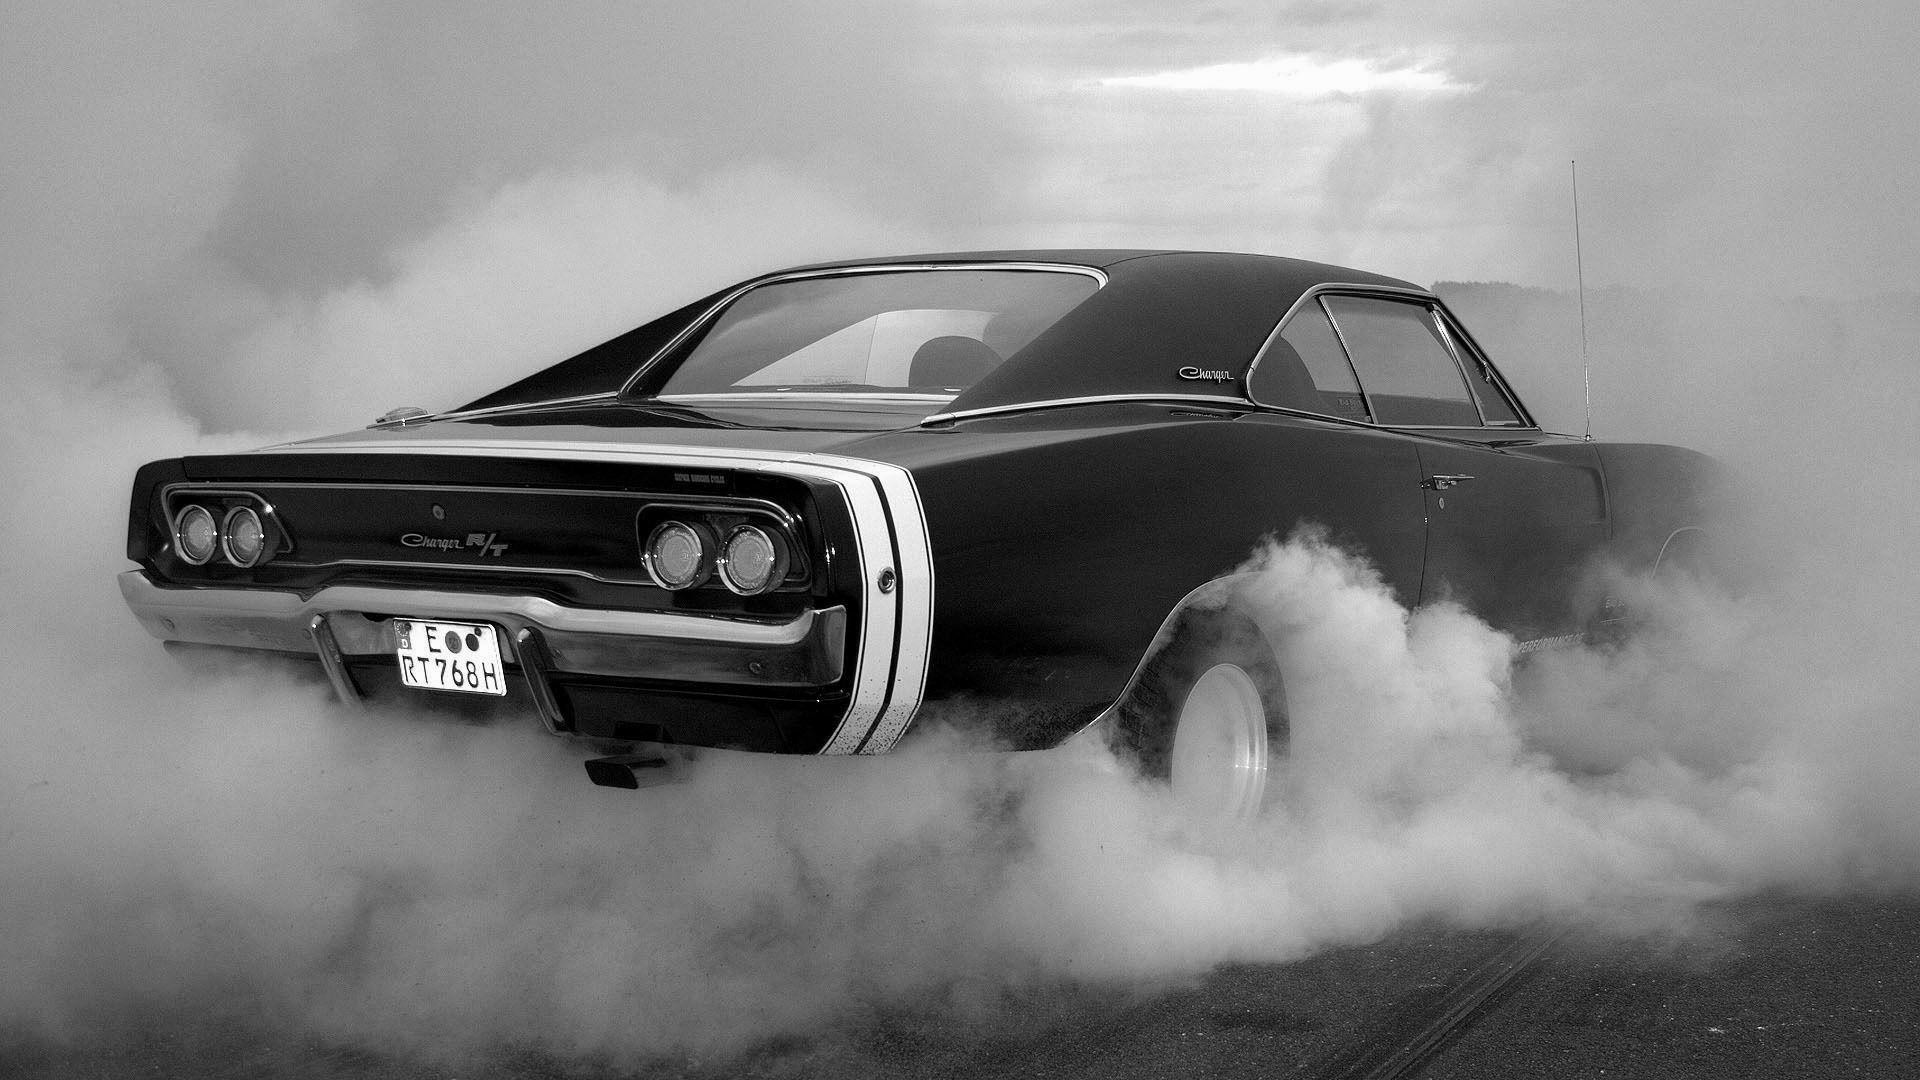 wallpaper.wiki-1970-Dodge-Charger-Background-HD-PIC-